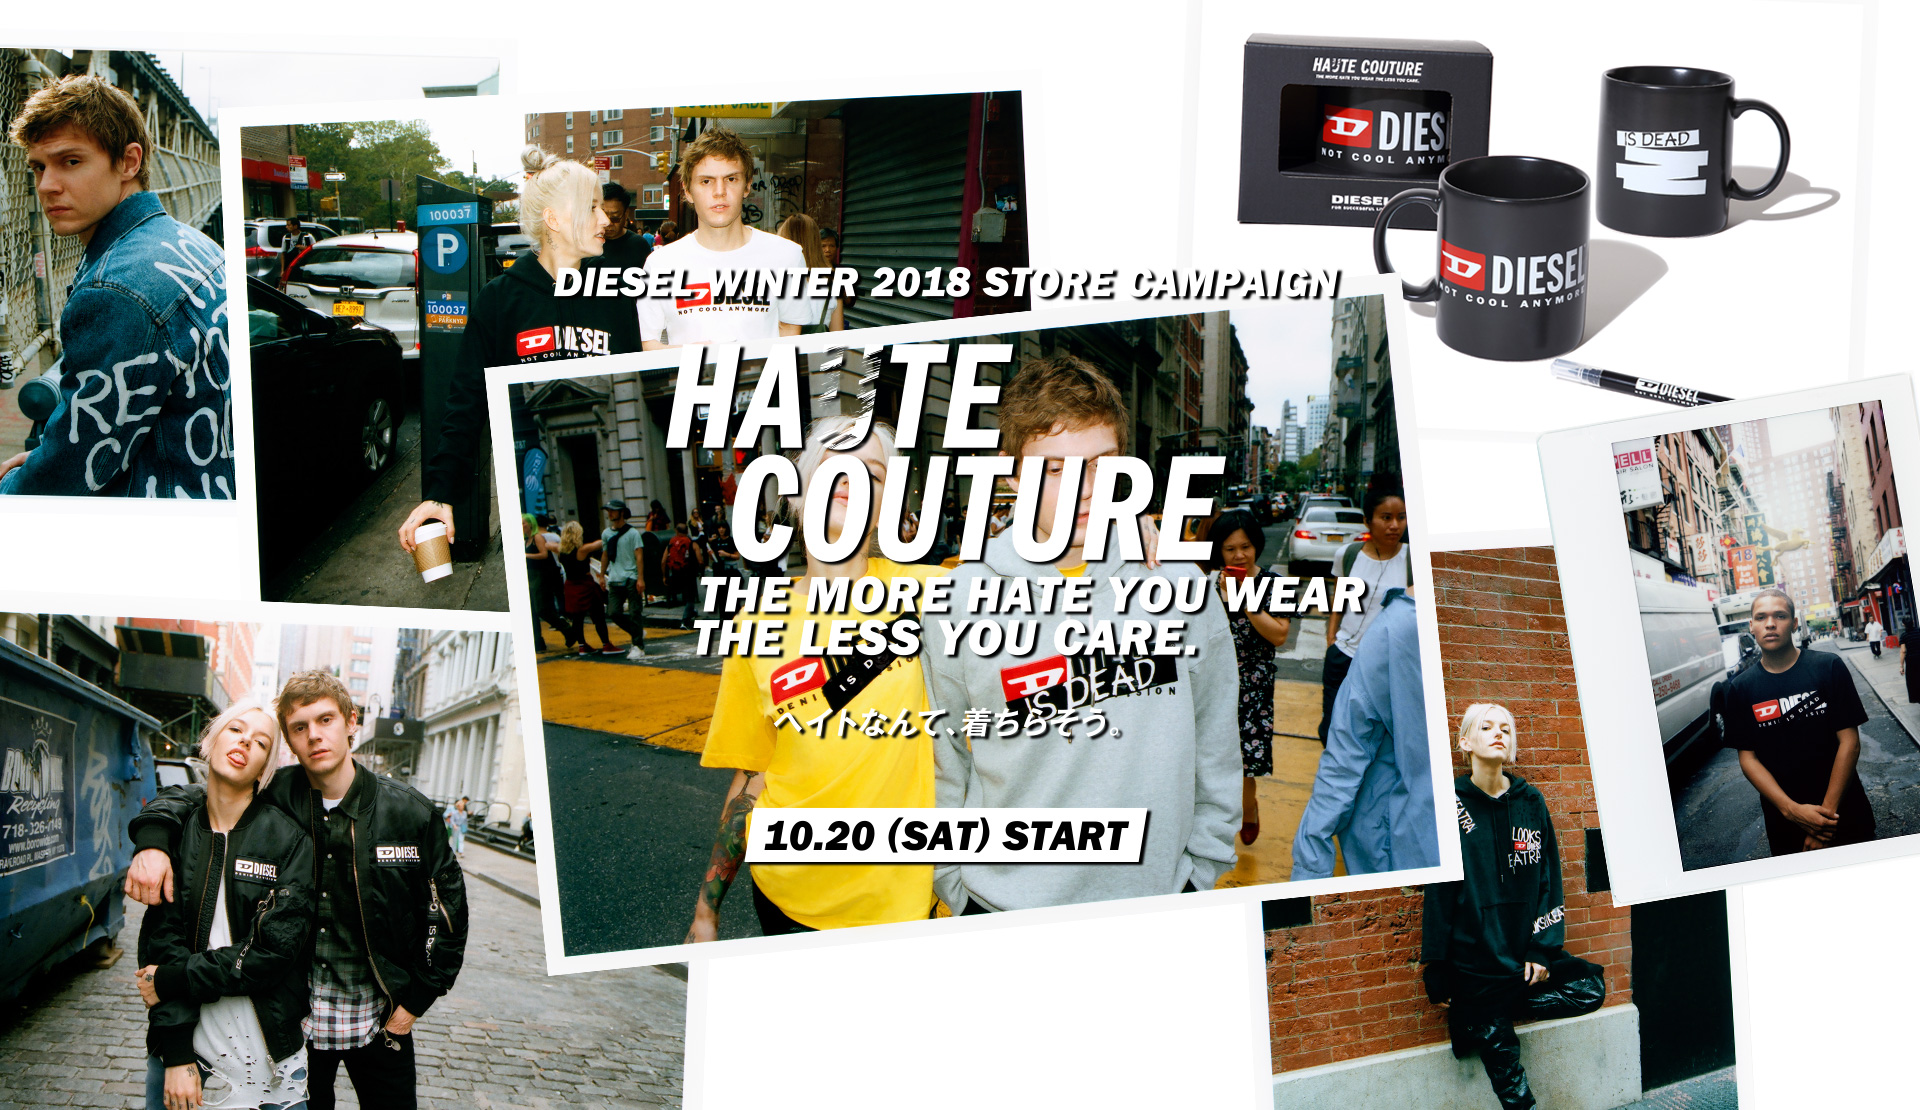 DIESEL WINTER 2018 STORE CAMPAIGN HA(U)TE COUTURE THE MORE HATE YOU WEAR THE LESS YOUR CARE. ヘイトなんて、着ちらそう。10.20(SAT)START